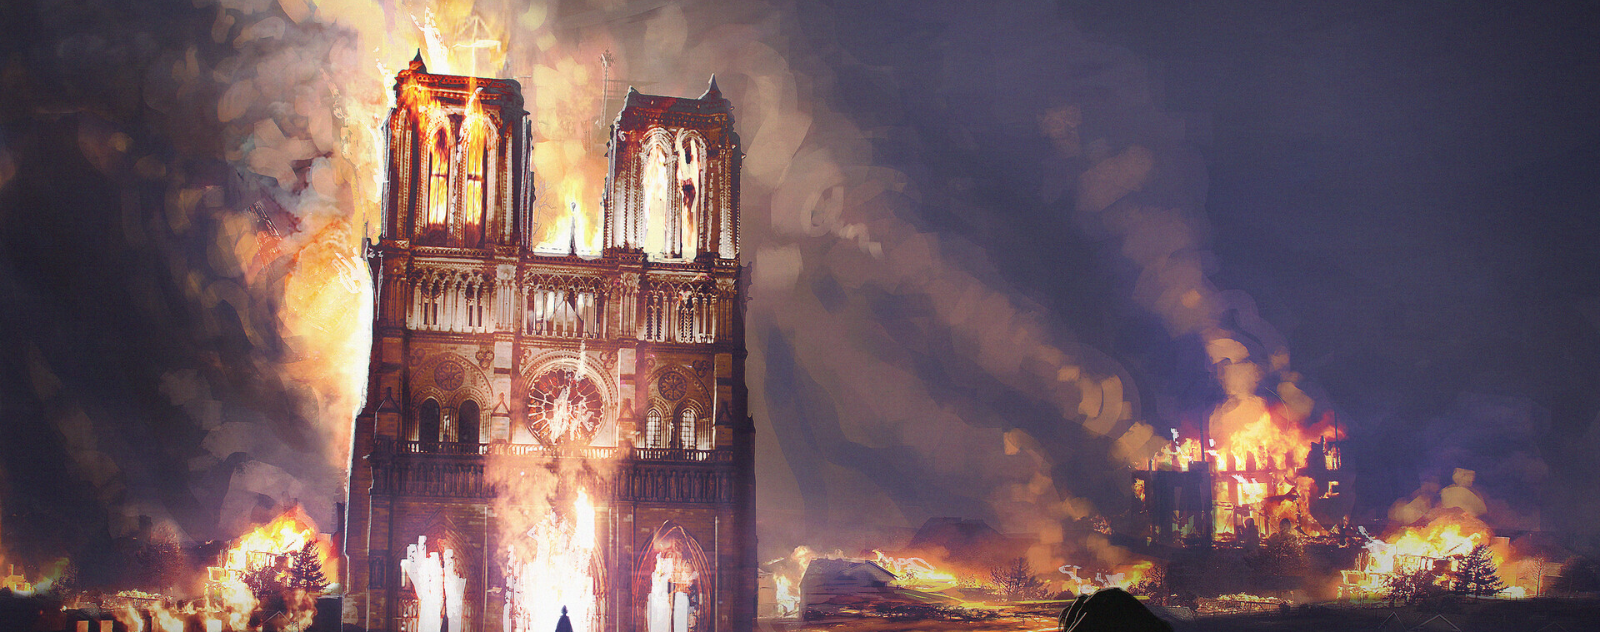 notre dame church fire